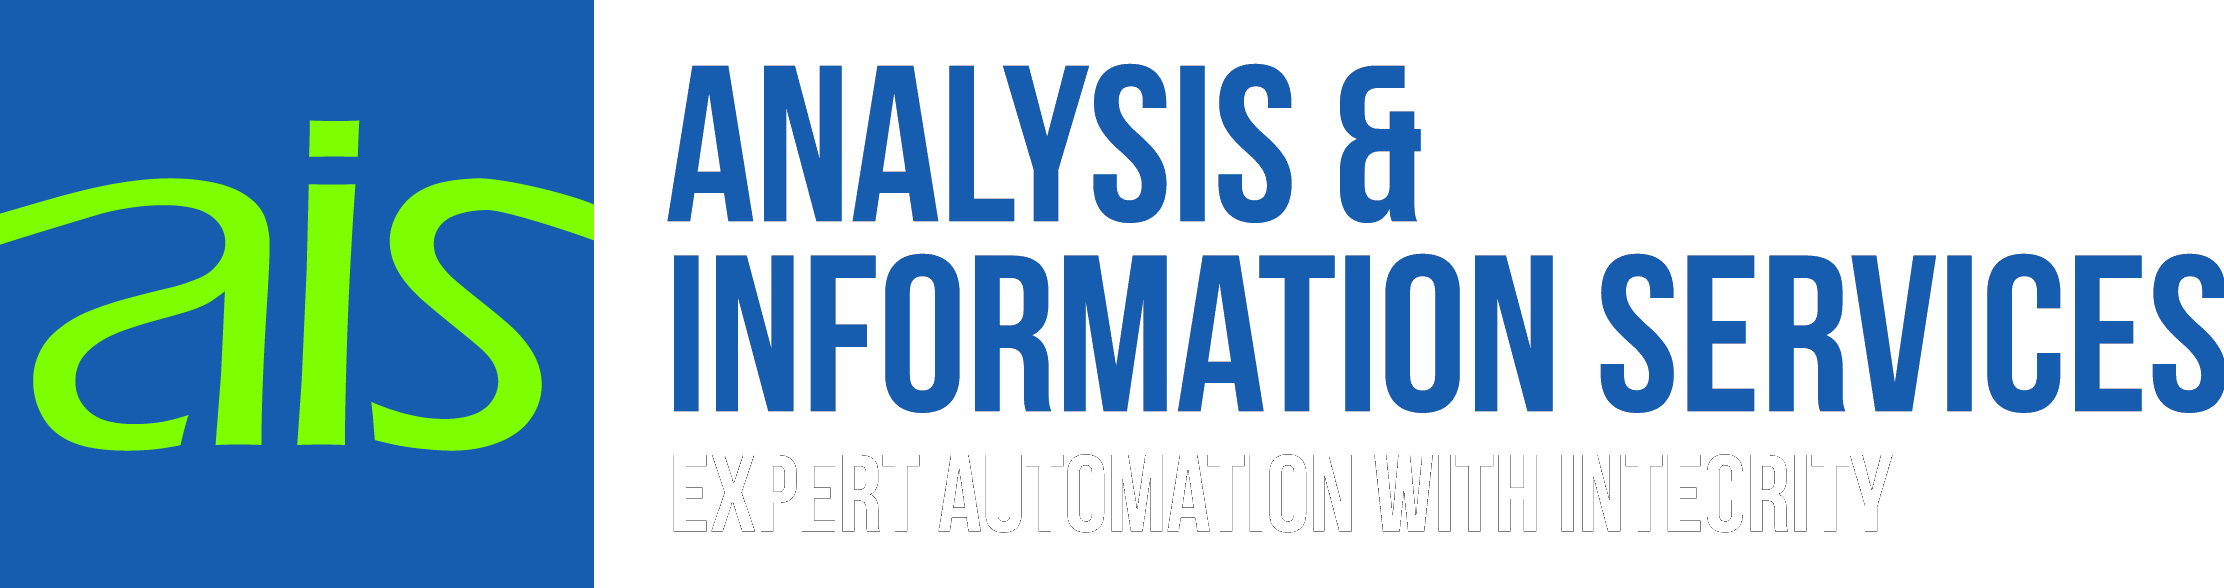 Analysis & Information Services